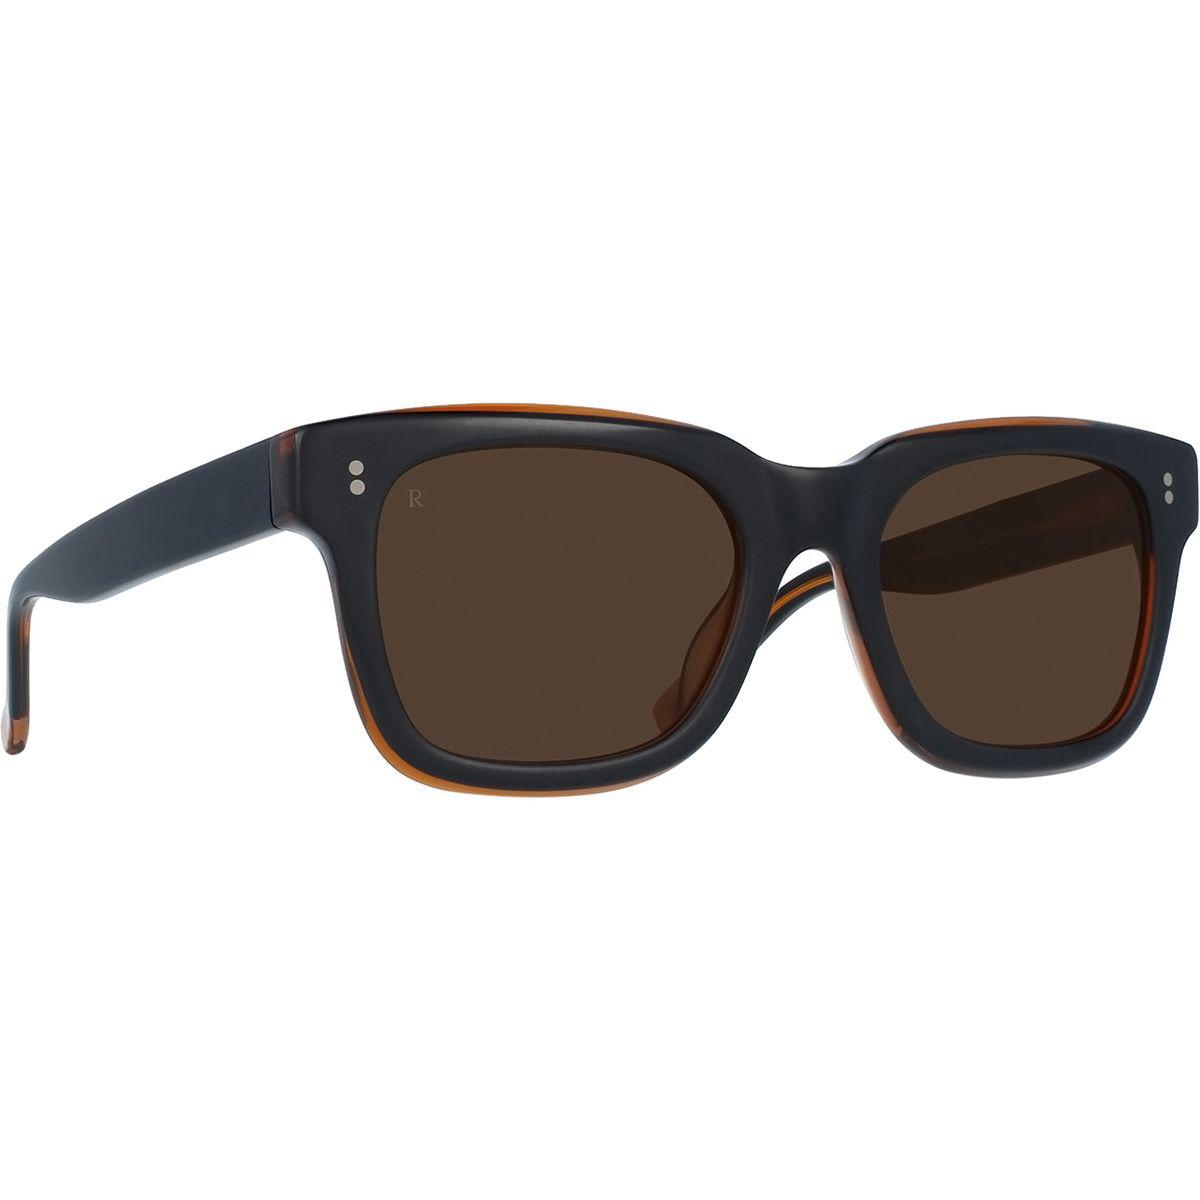 637dafaf79b Lyst - Raen Gilman Sunglasses in Brown for Men